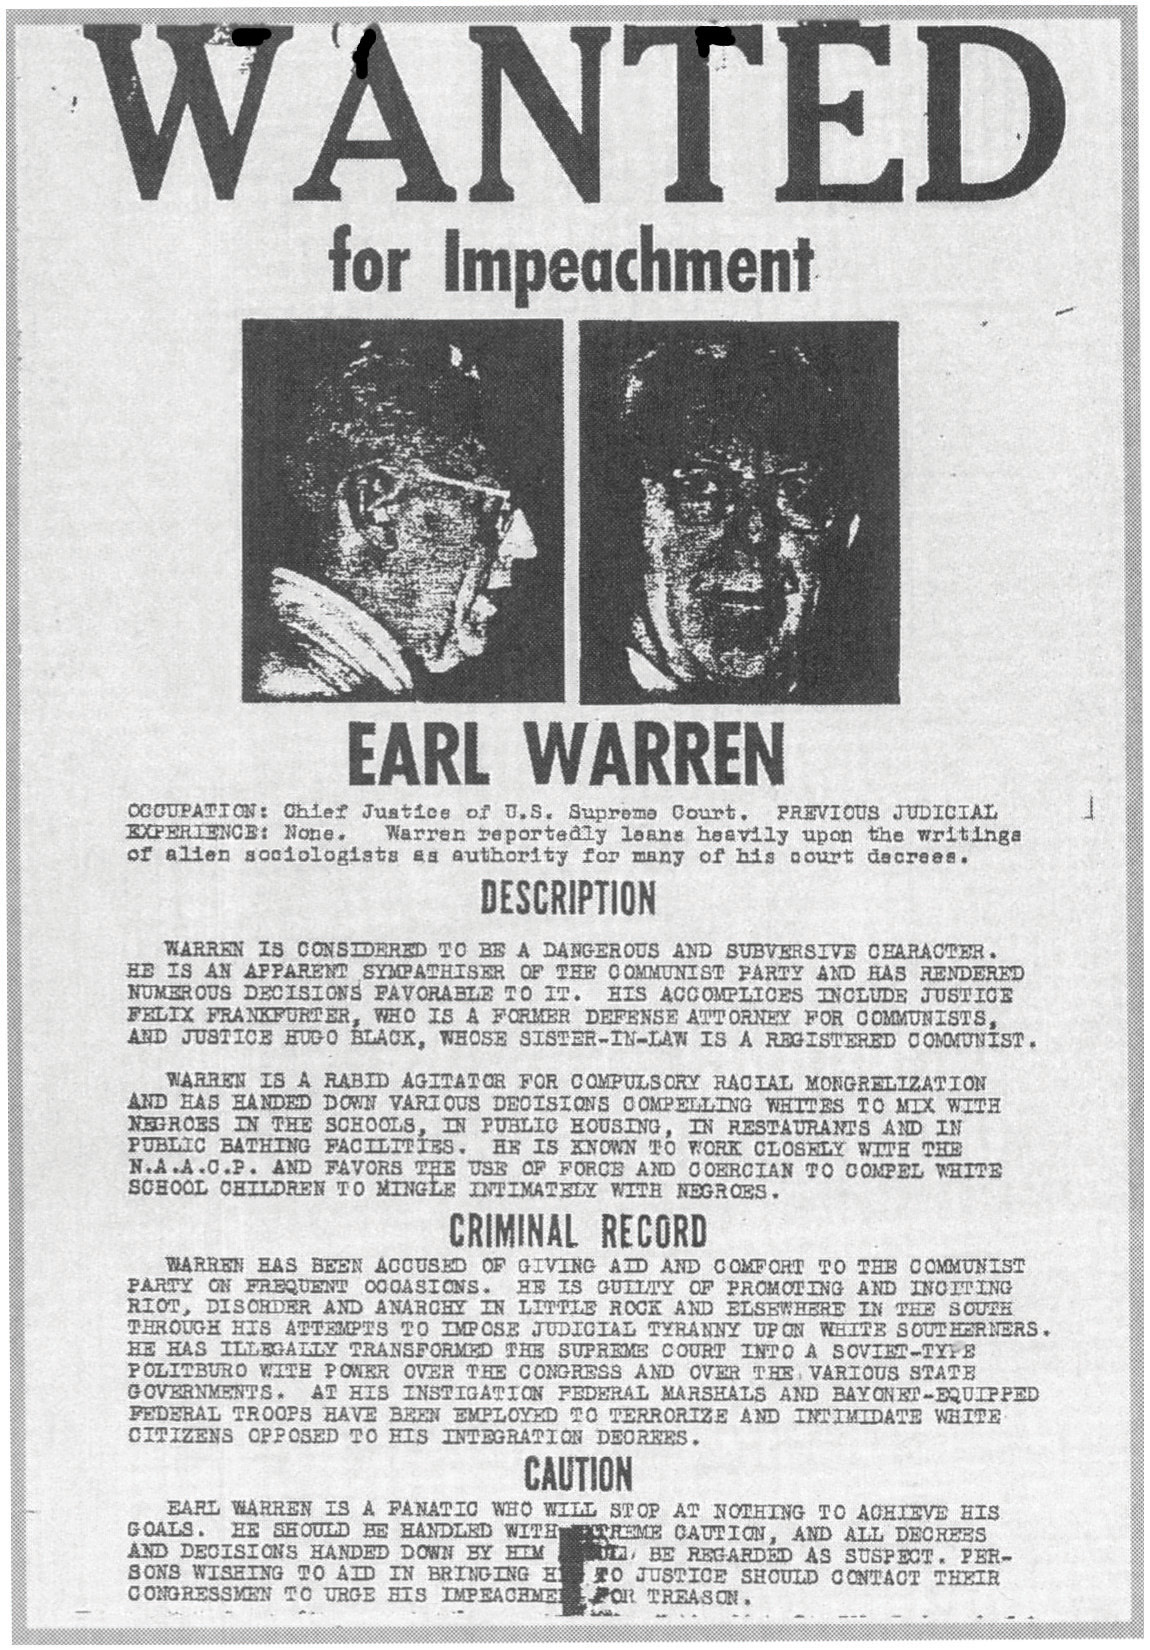 A wanted for Impeachment poster for Earl Warren